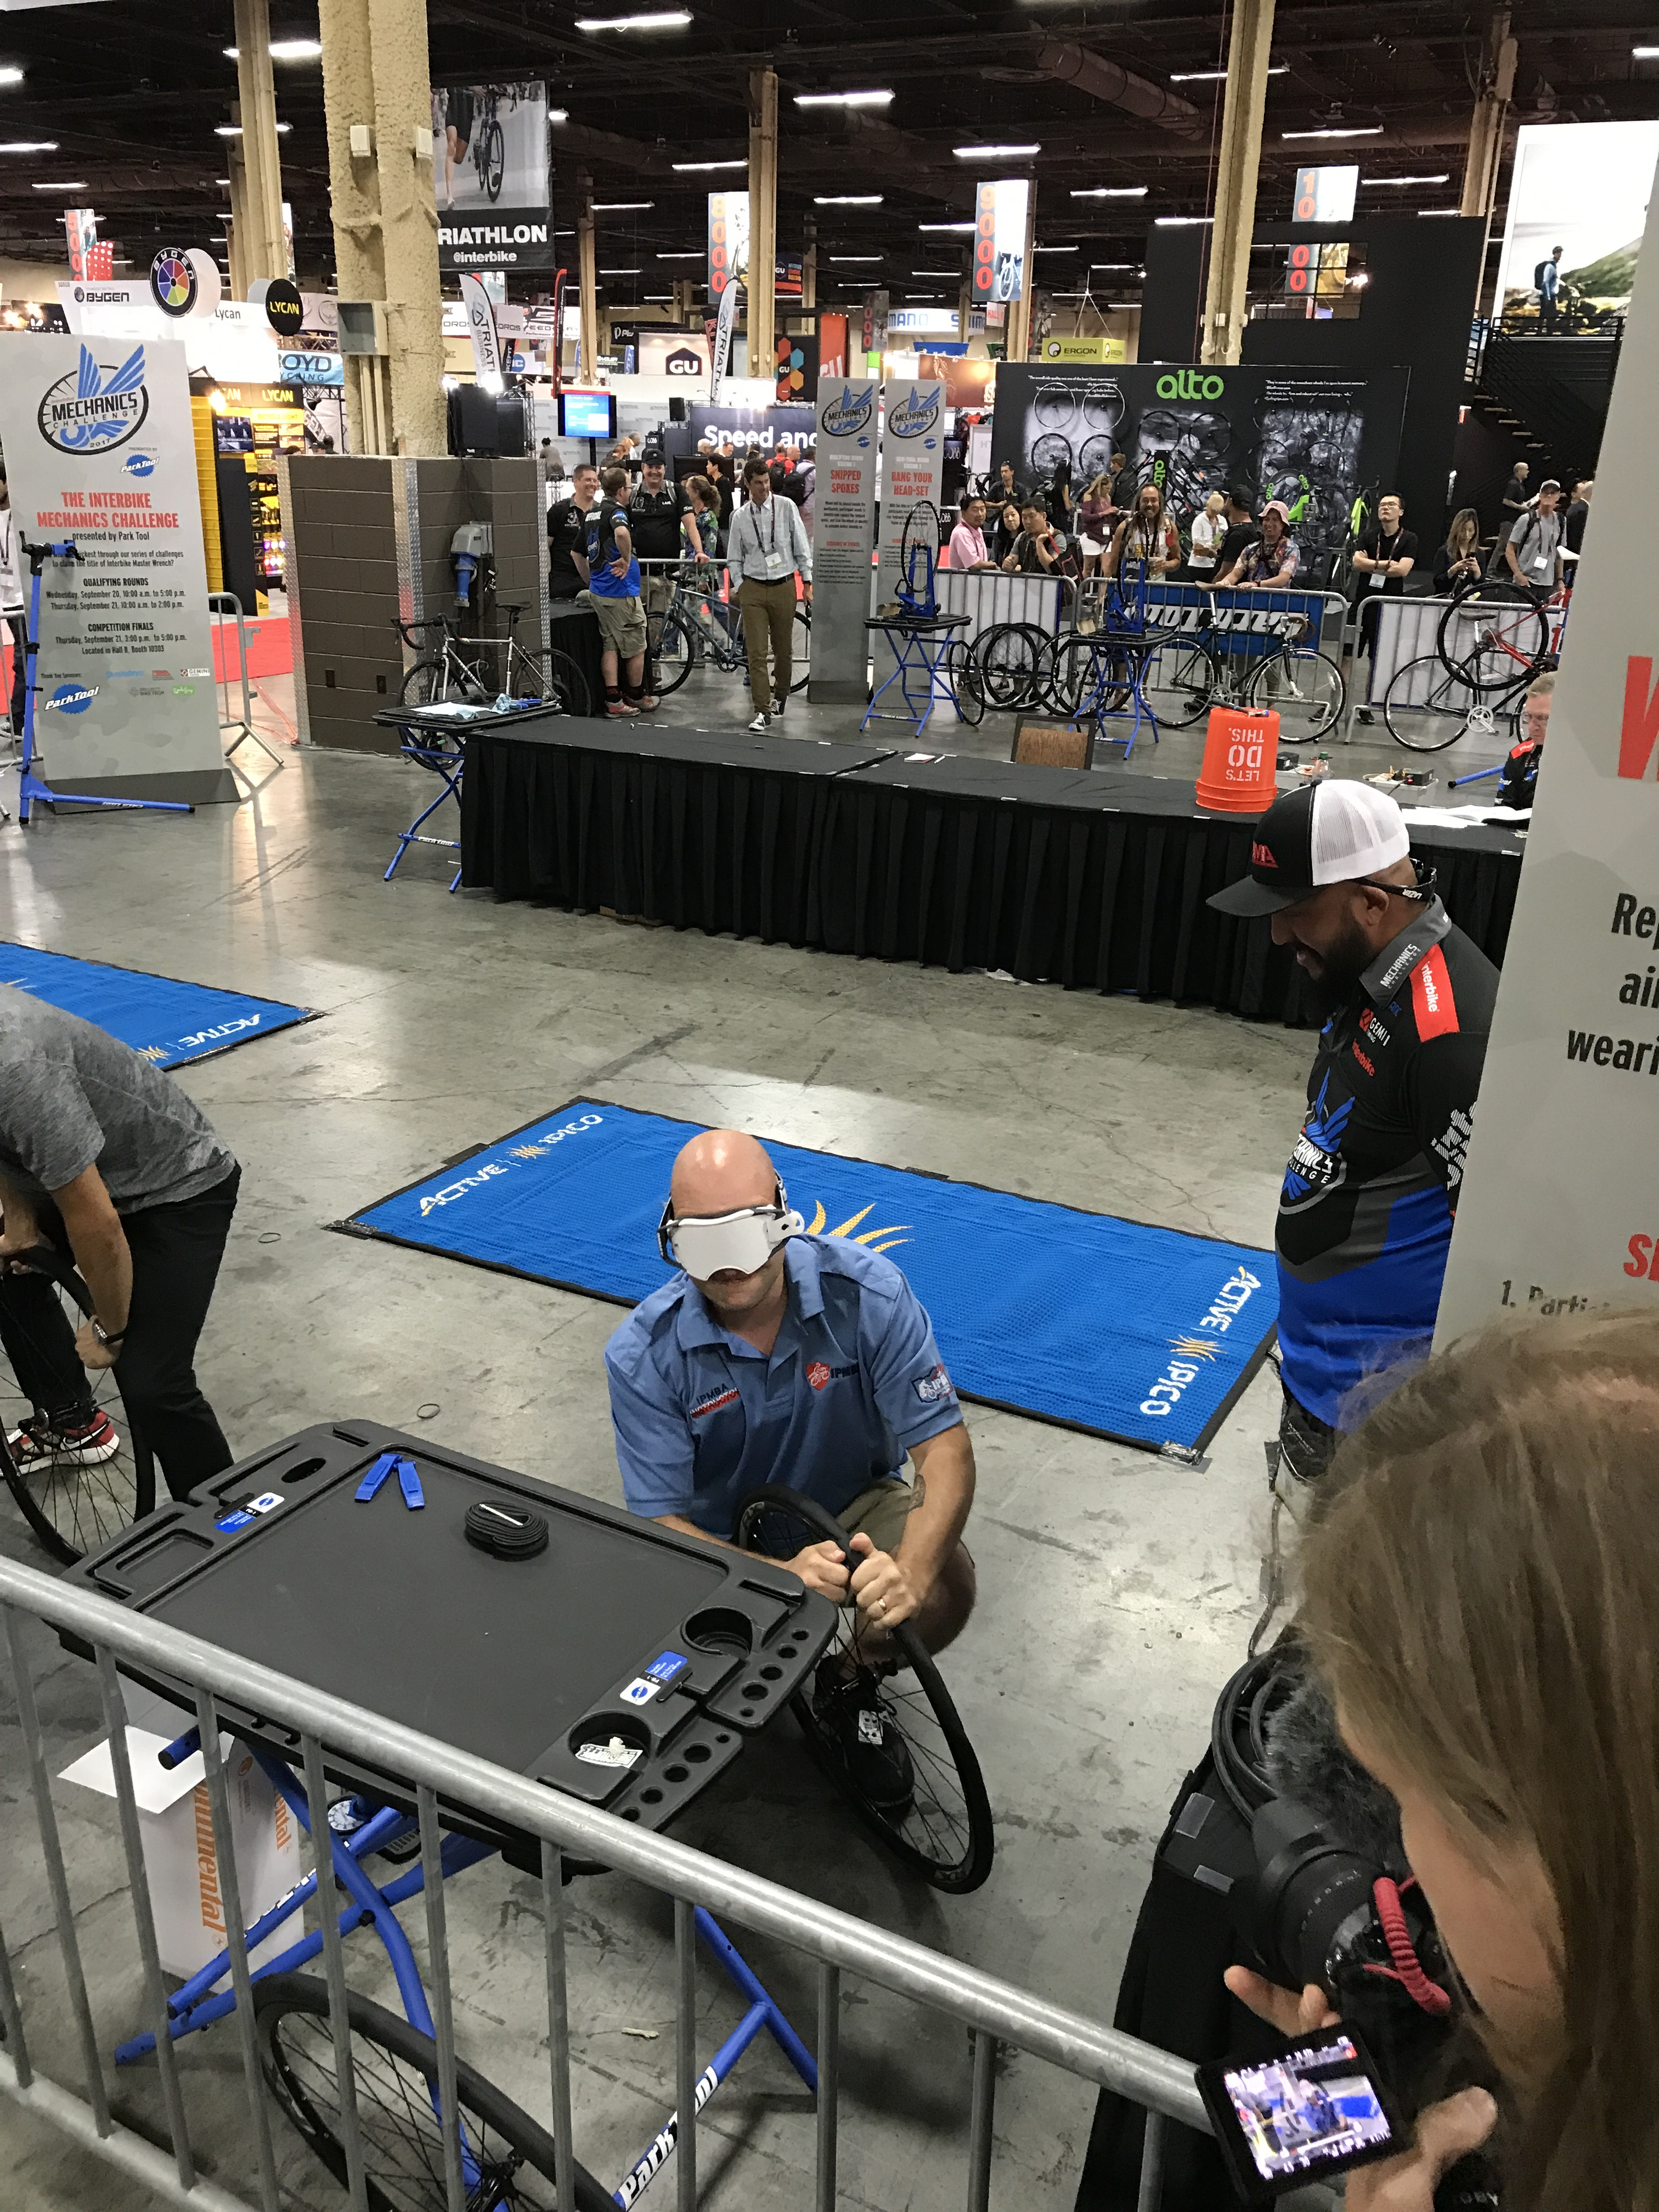 Interbike 2017: A Dream Come True